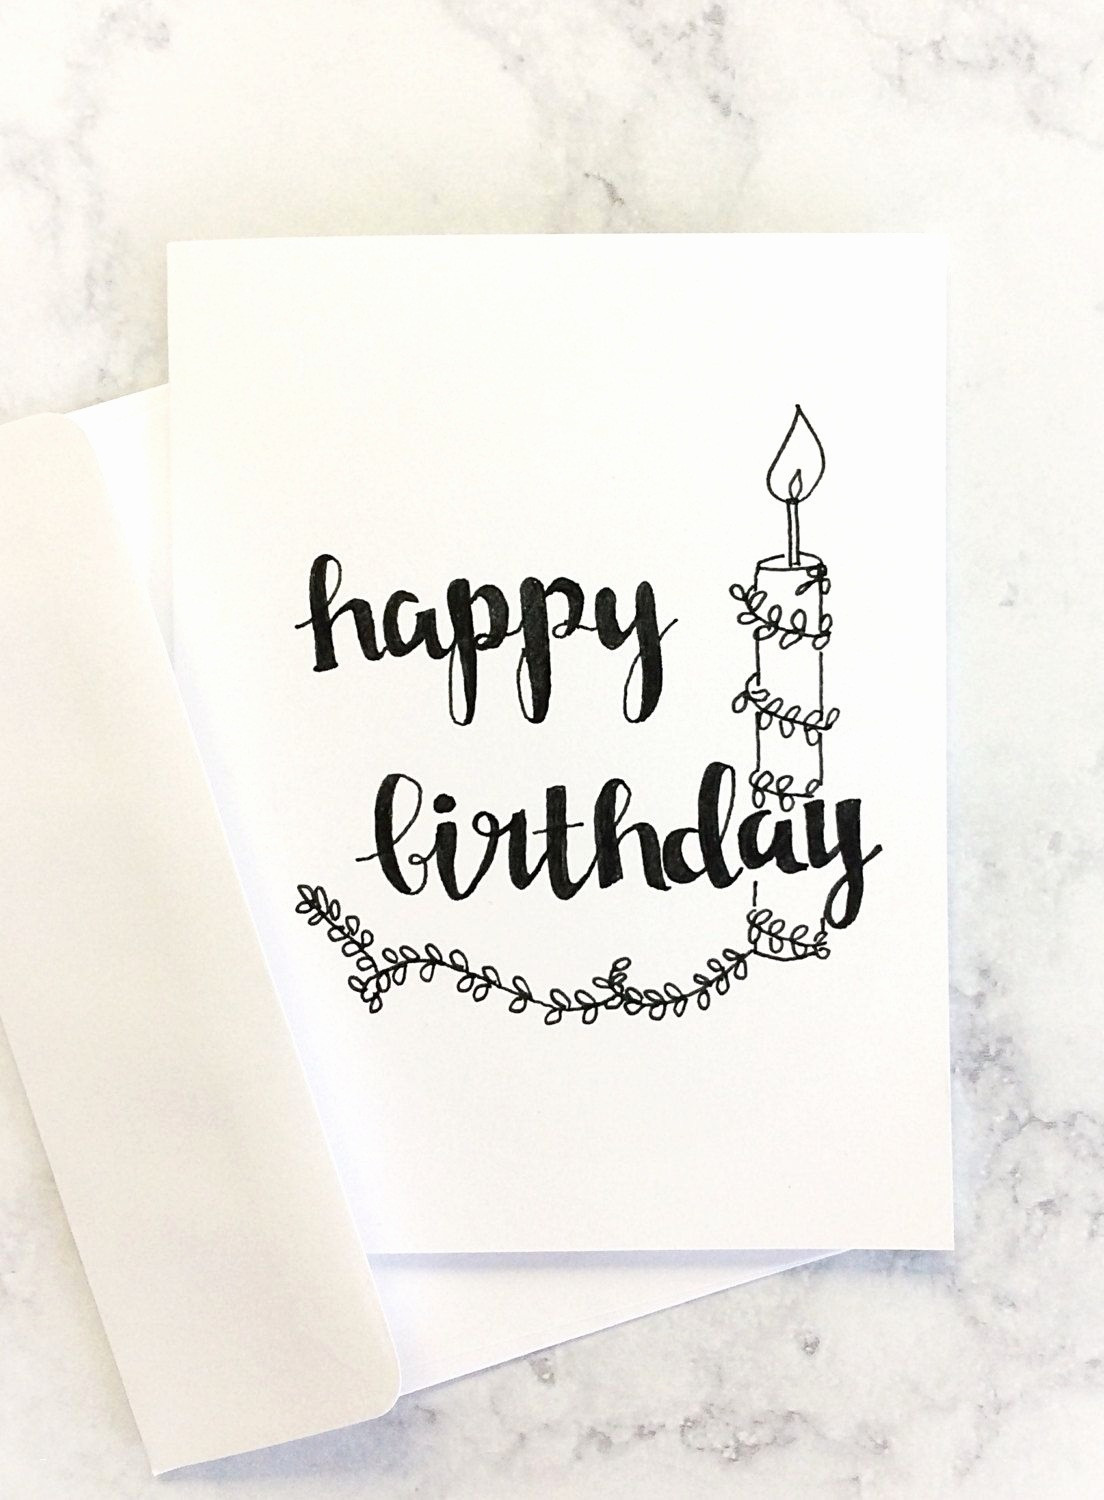 Best ideas about Professional Birthday Wishes . Save or Pin 25 Luxury Professional Birthday Card Messages Now.